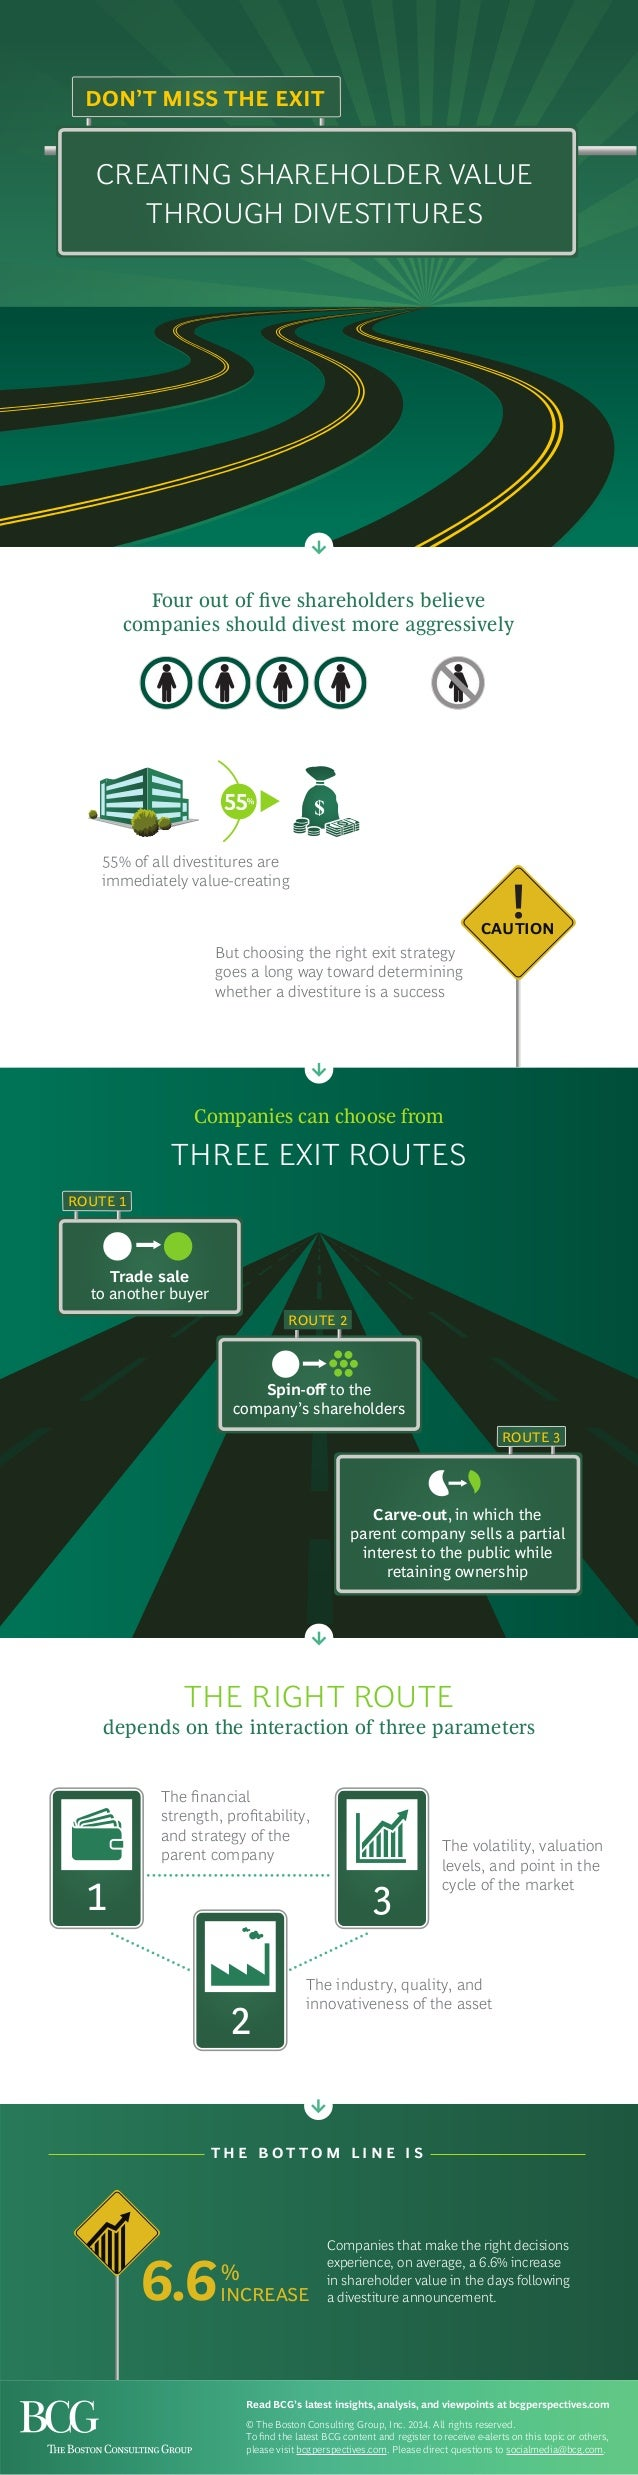 DON'T MISS THE EXIT CREATING SHAREHOLDER VALUE THROUGH DIVESTITURES Spin-off to the company's shareholders ROUTE 2 ROUTE 3 ...